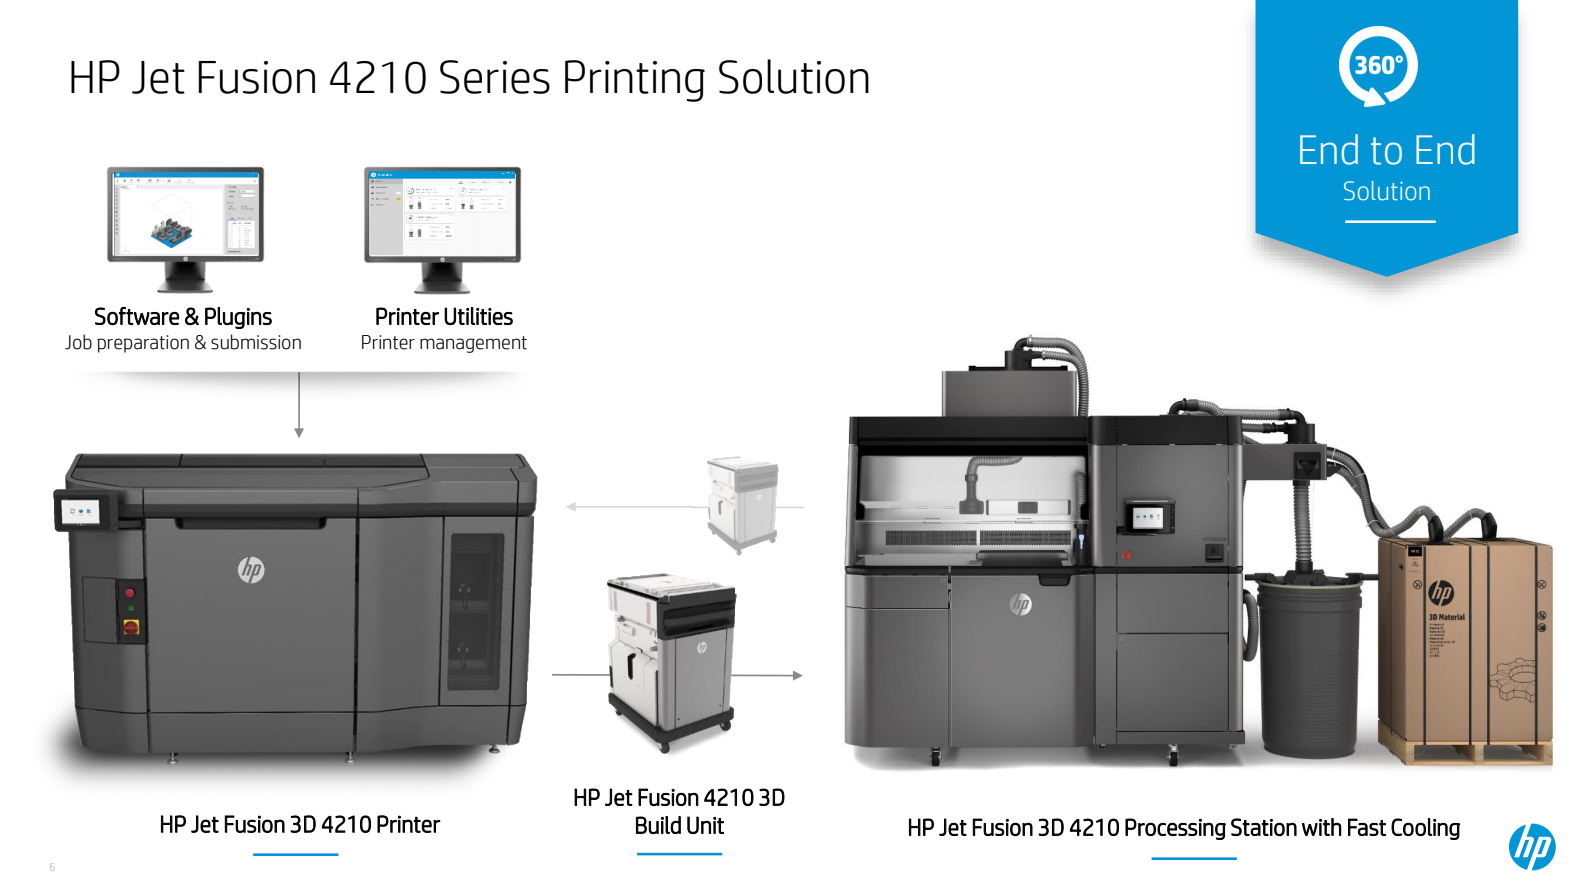 HP Jet Fusión 4200/4210 3D Printer